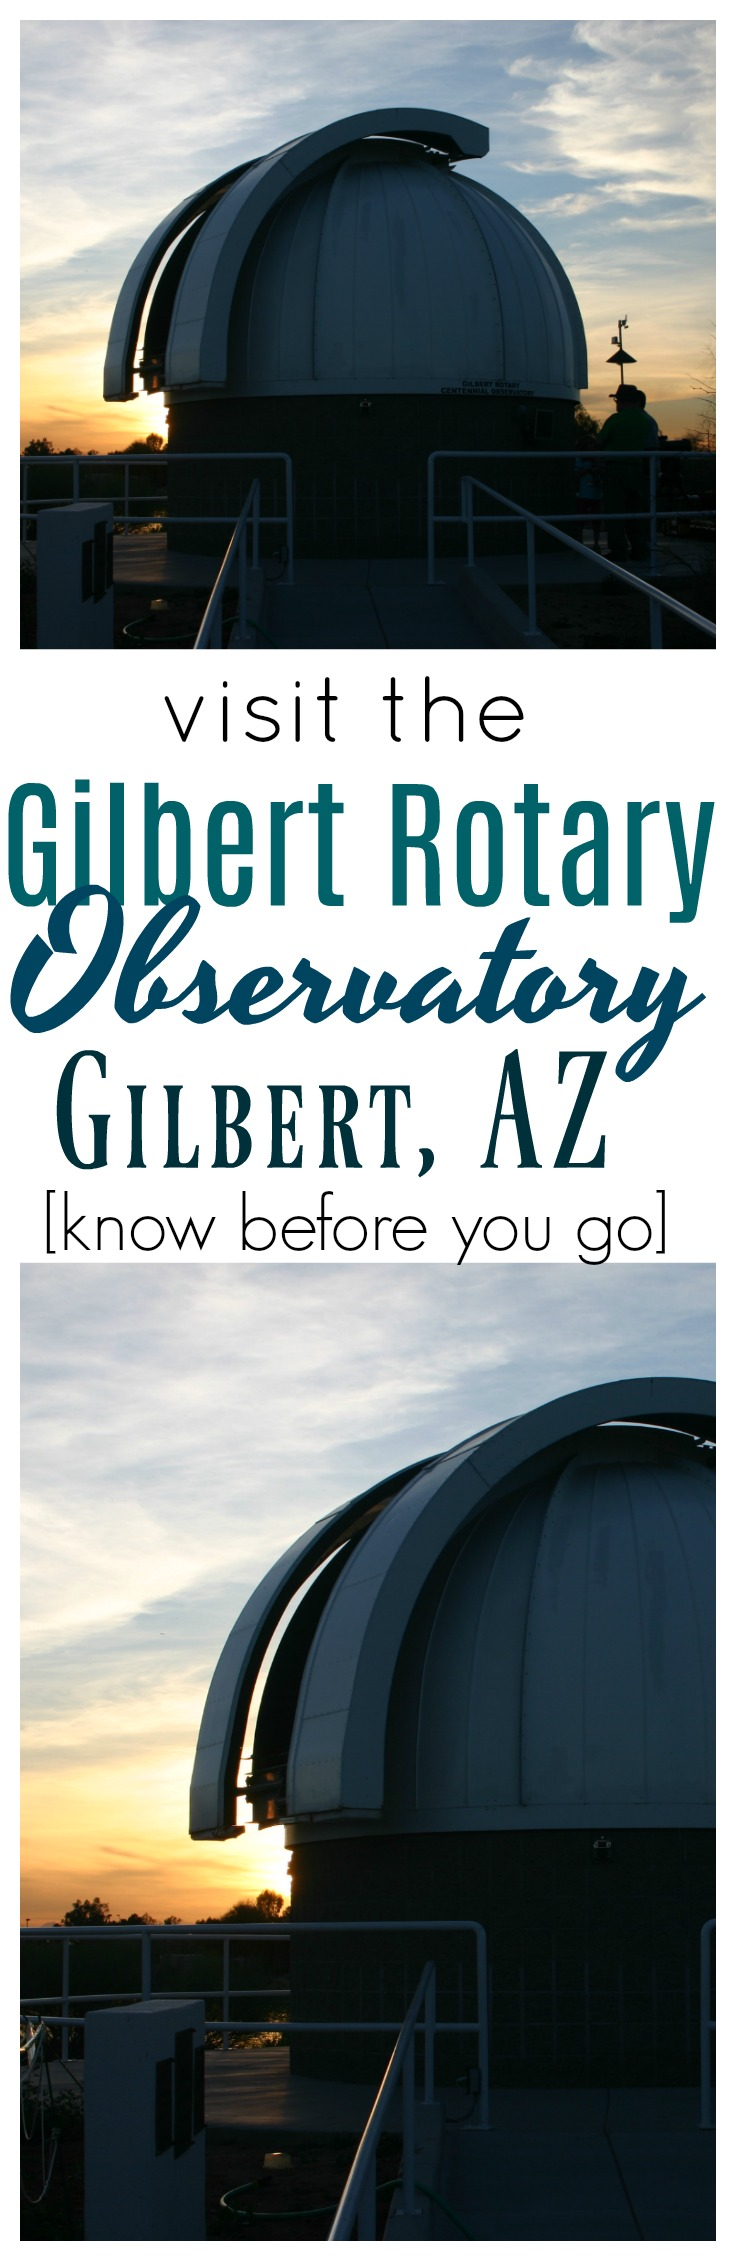 Visit the Gilbert Rotary Centennial Observatory on a Friday or Saturday night to view Jupiter, Saturn, and the stars of our distant planetary system.